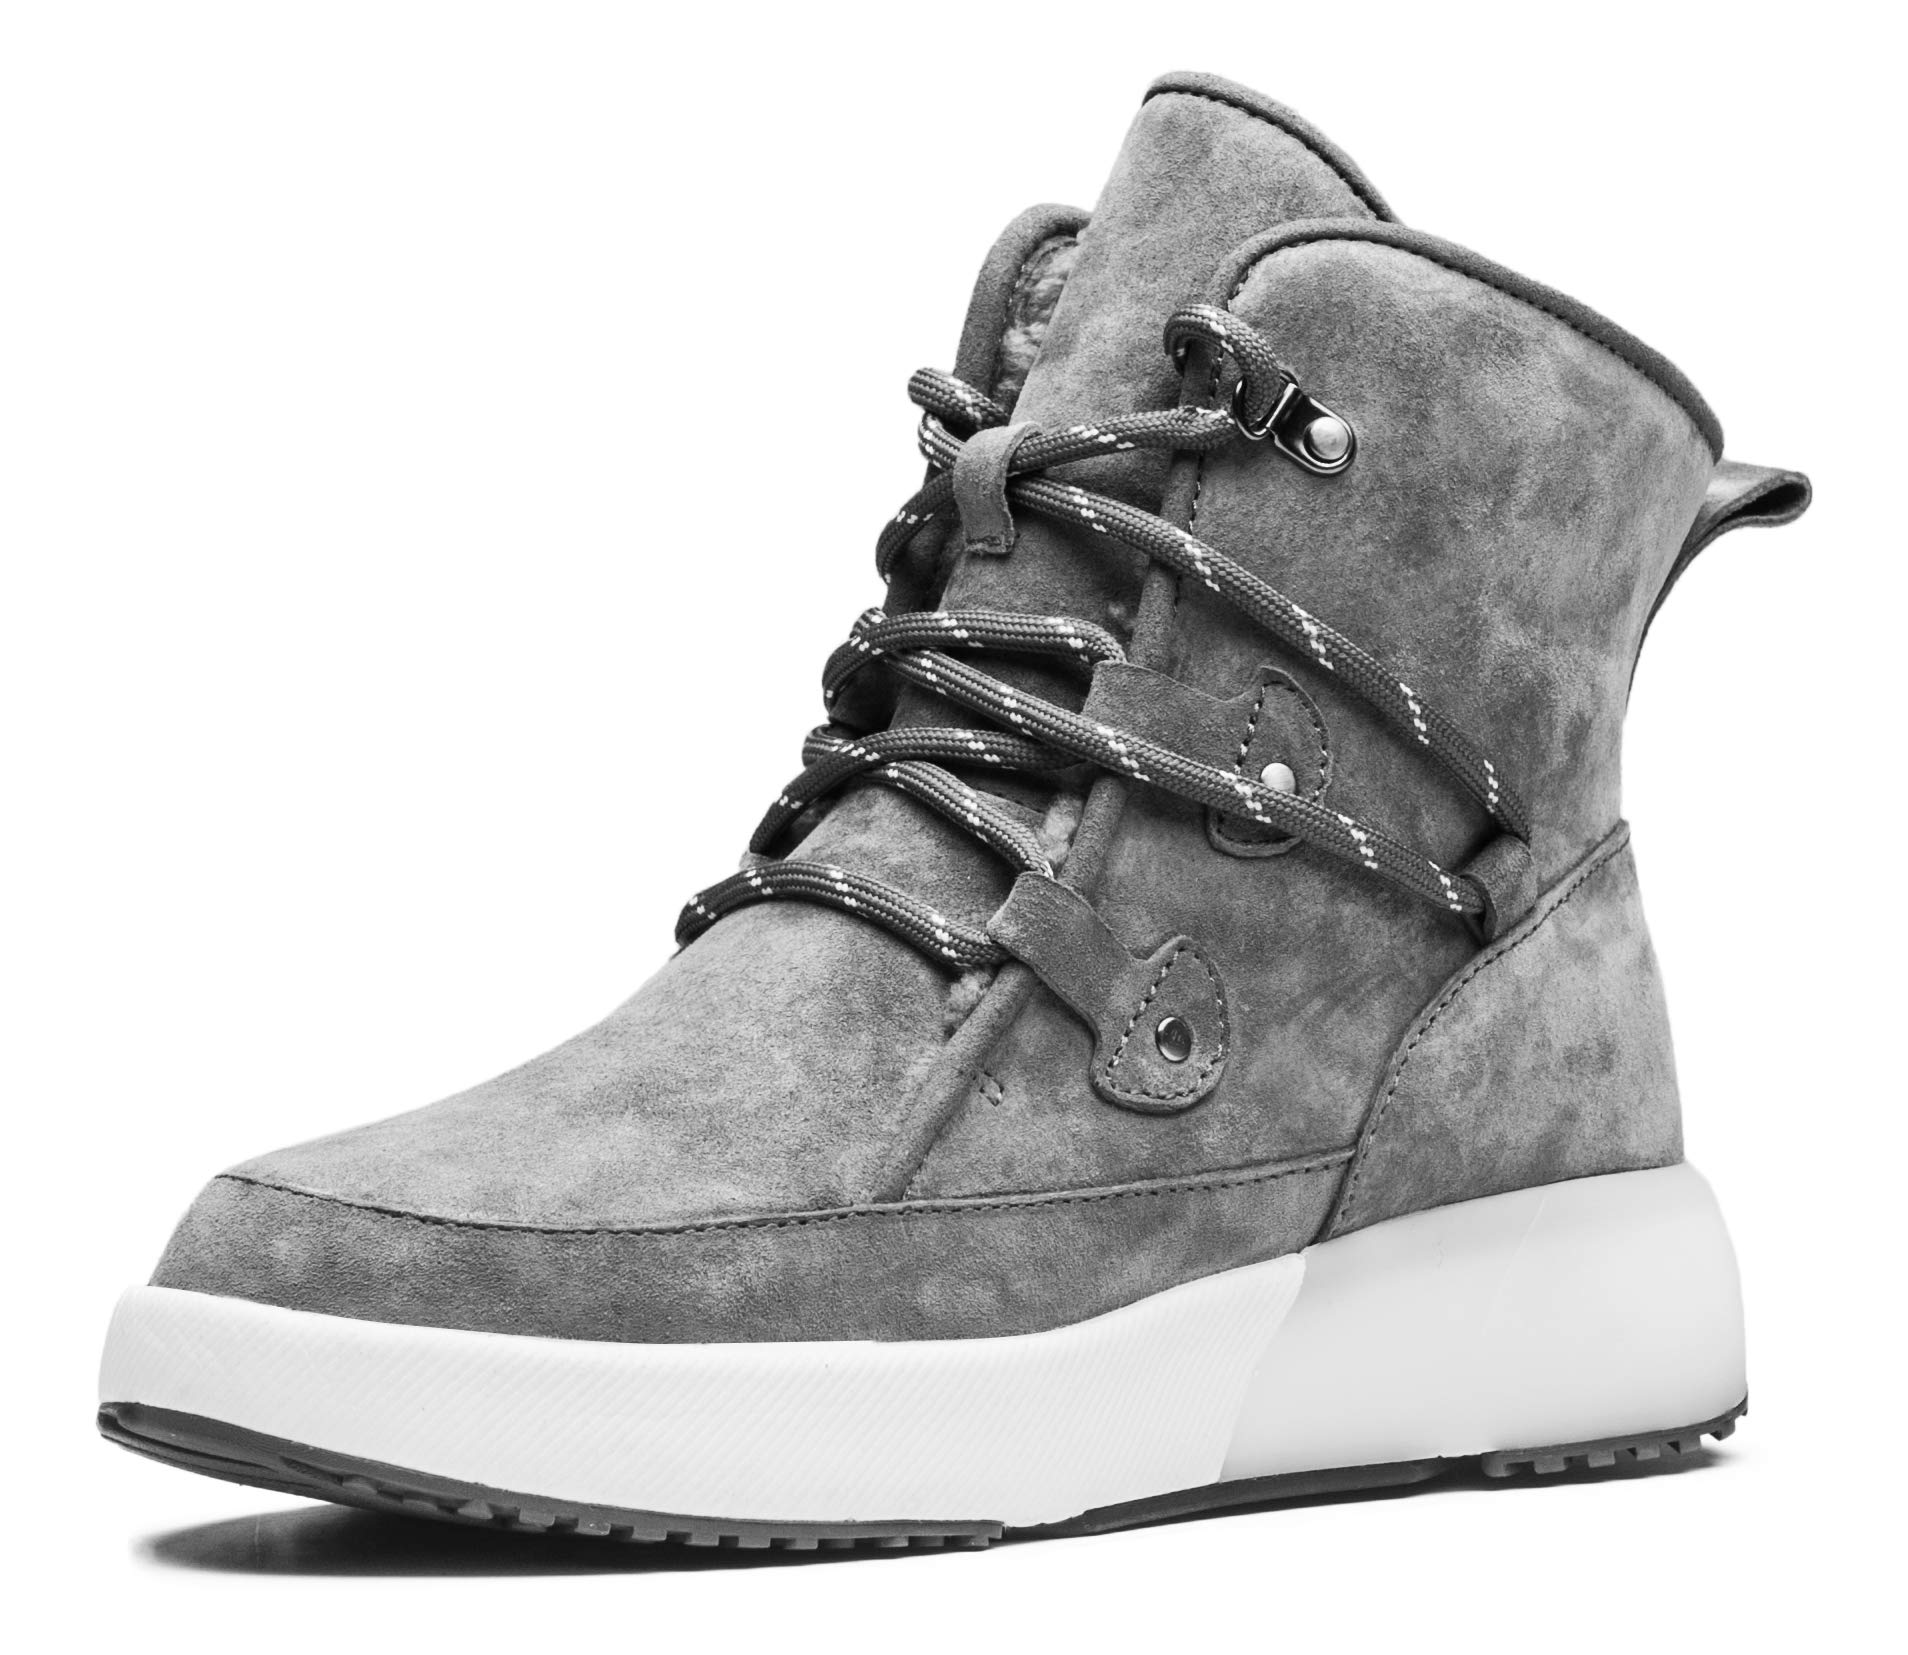 AU&MU Aumu Taurus Leather Metal Buckle Brass Eyelets Suede Upper Laces Winter Snow Boots